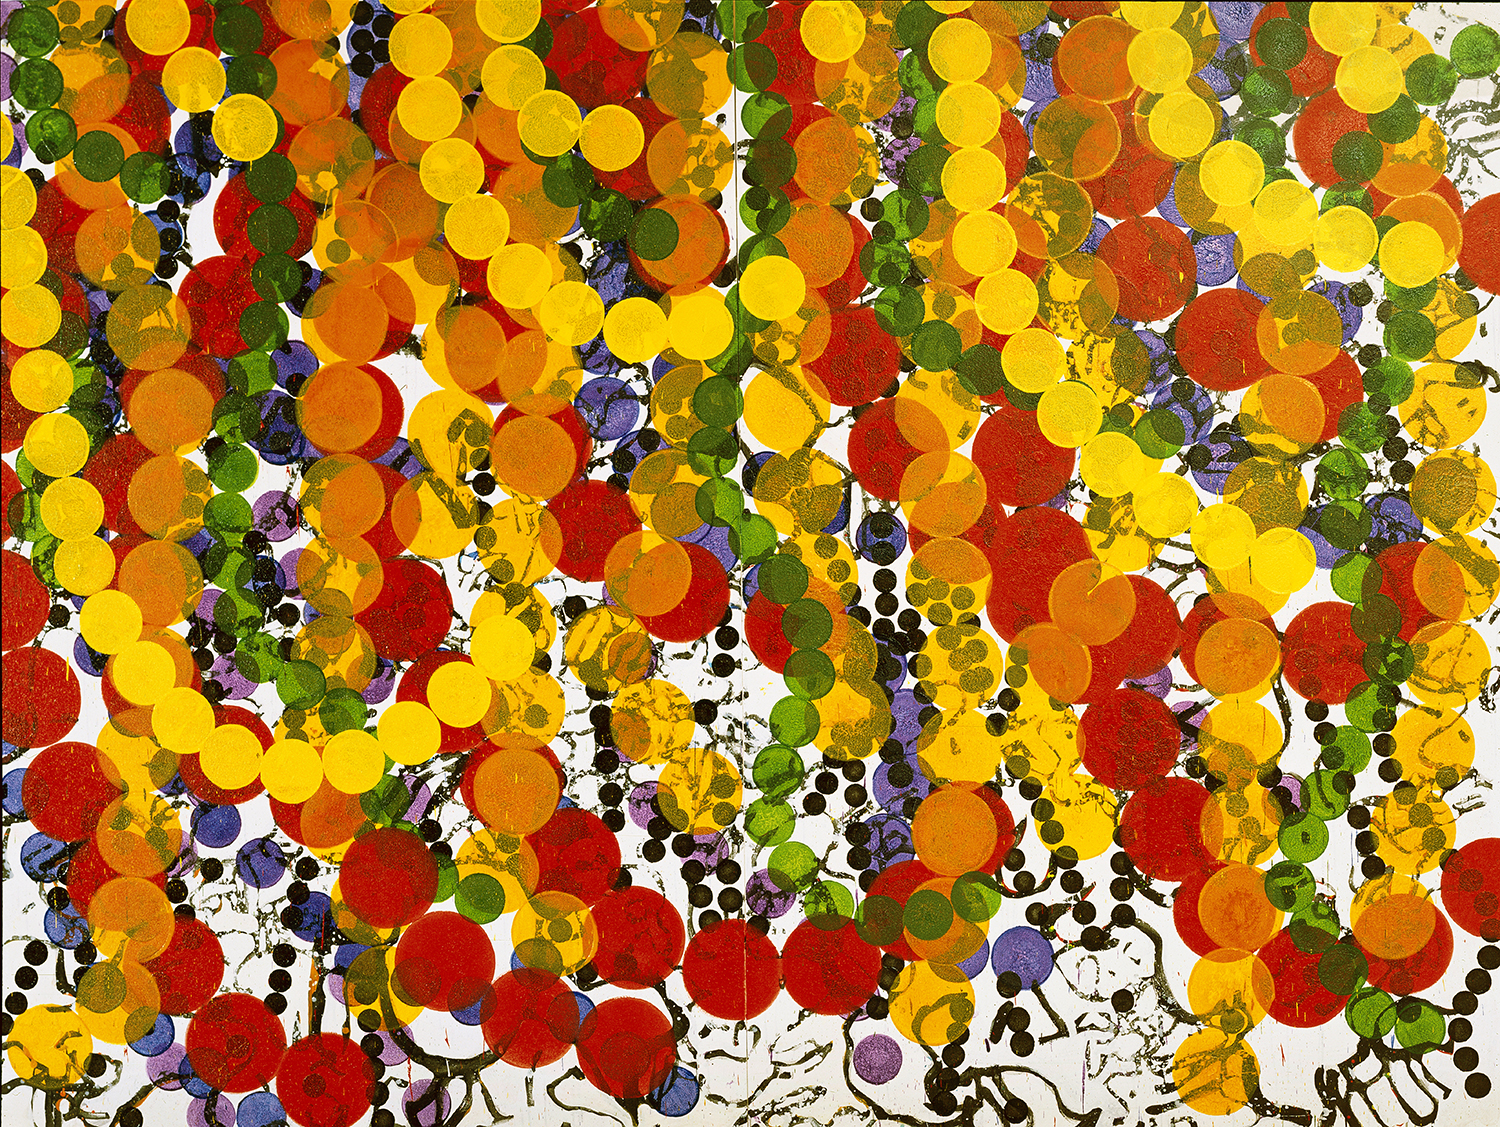 Trapeze (Well Hung) | acrylic and varnish on canvas | 96″ x 128″ | 2002